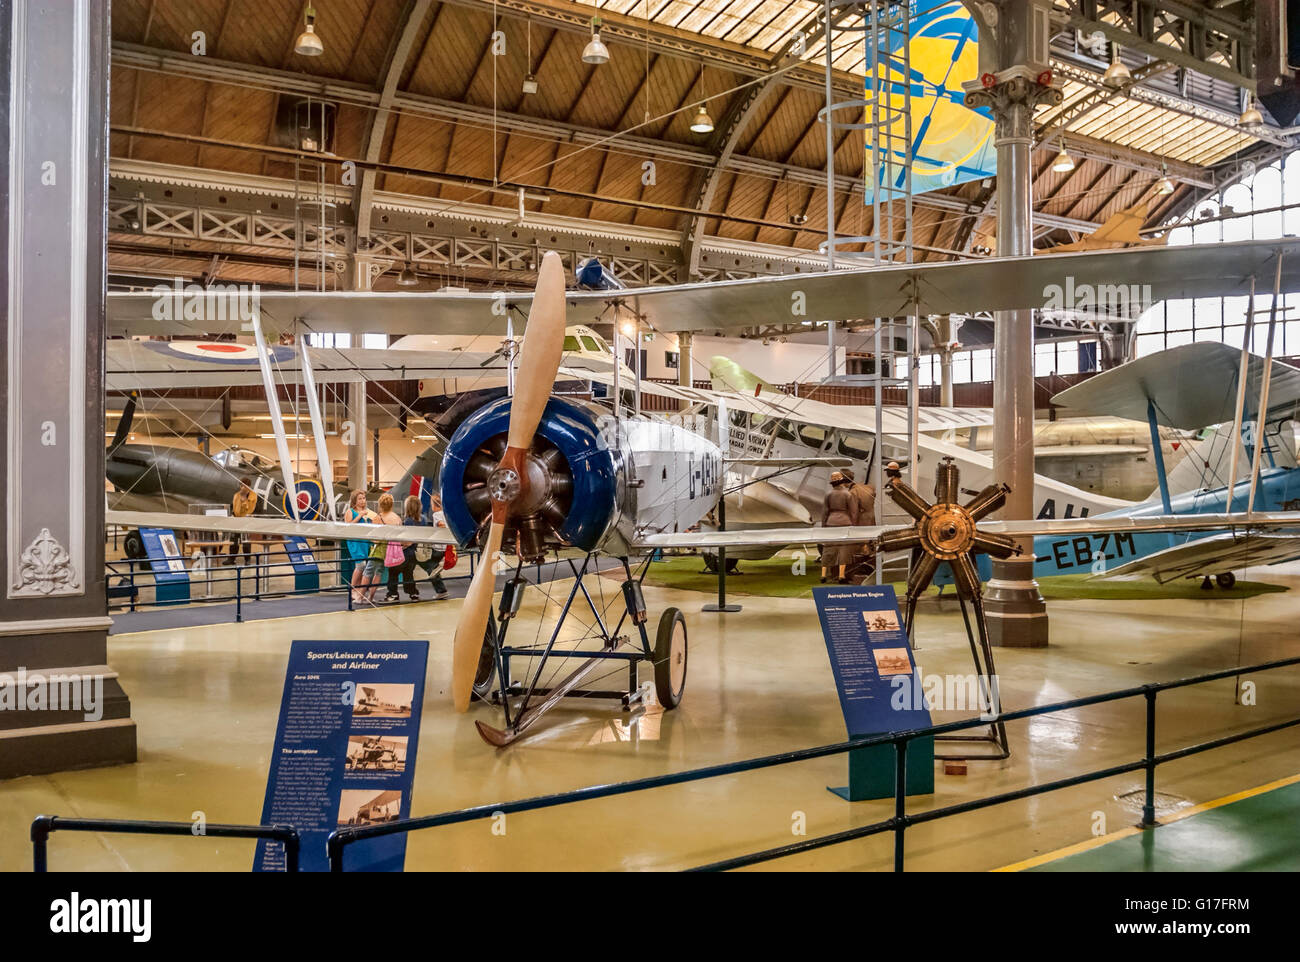 Airplanes on display the Air & Space Hall at the Museum of Science and Industry in Manchester (MOSI), England. - Stock Image